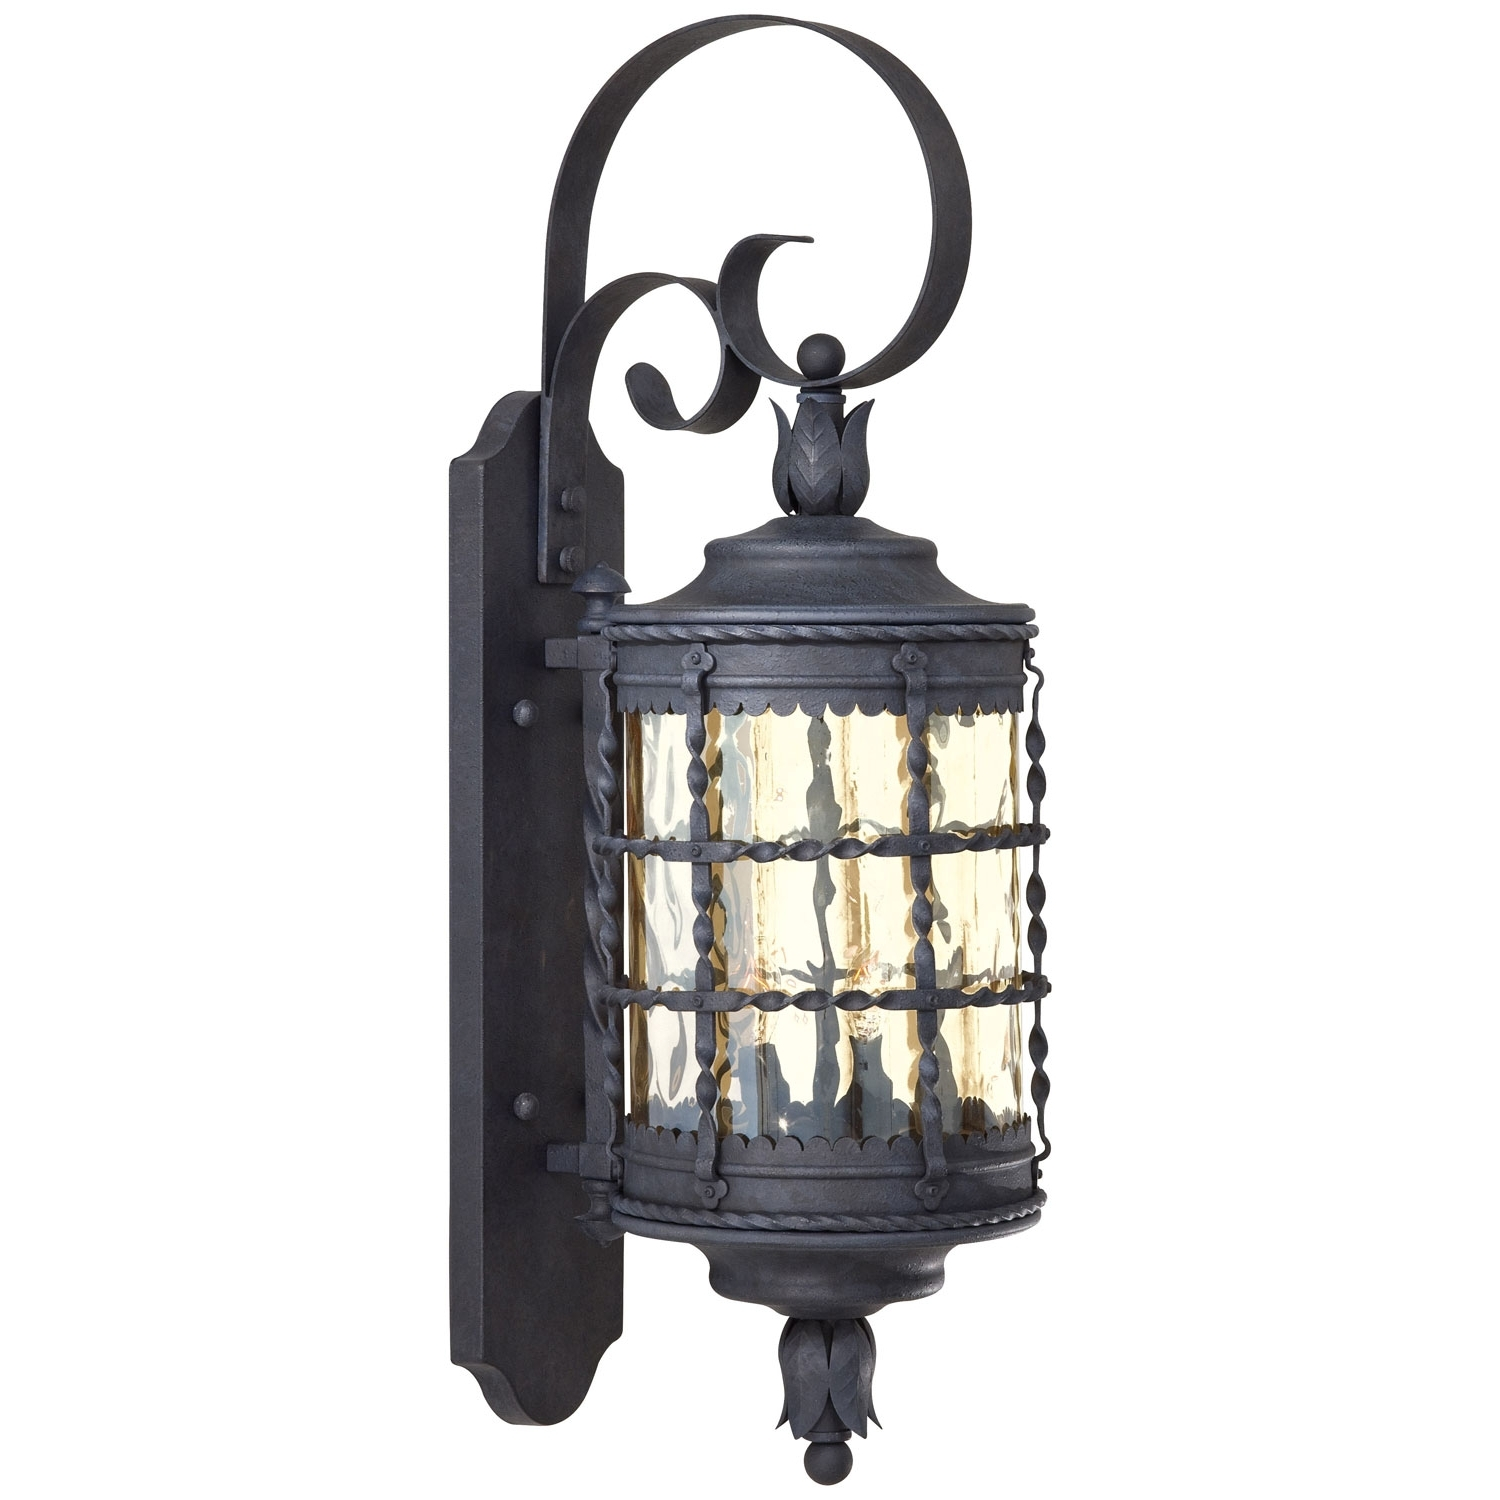 Large Outdoor Wall Lanterns Within Most Popular Minka Lavery Mallorca Exterior Wall Mount 8881 A (View 5 of 20)